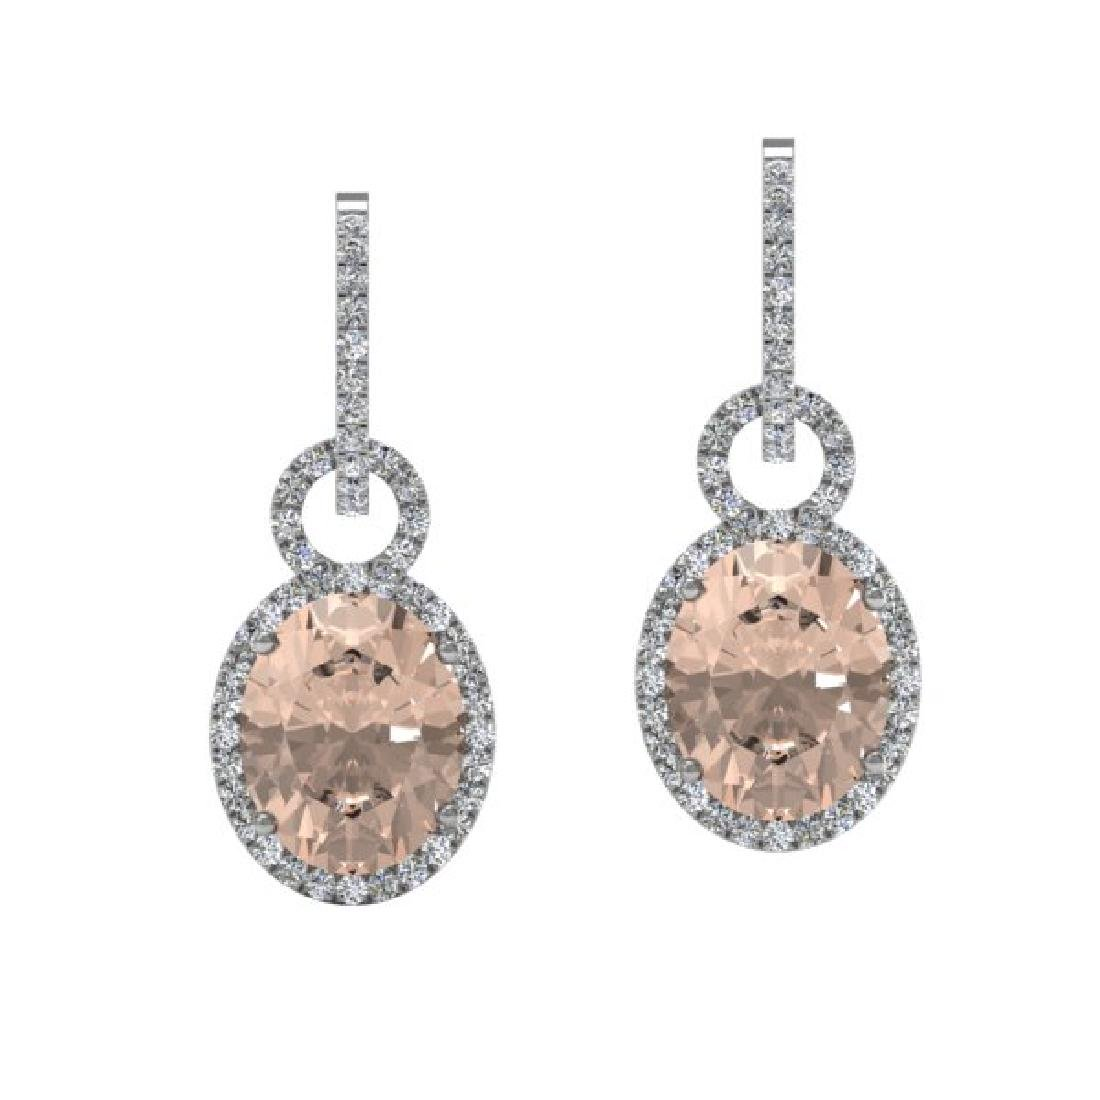 7 CTW Morganite & Micro Pave Solitaire Halo VS/SI